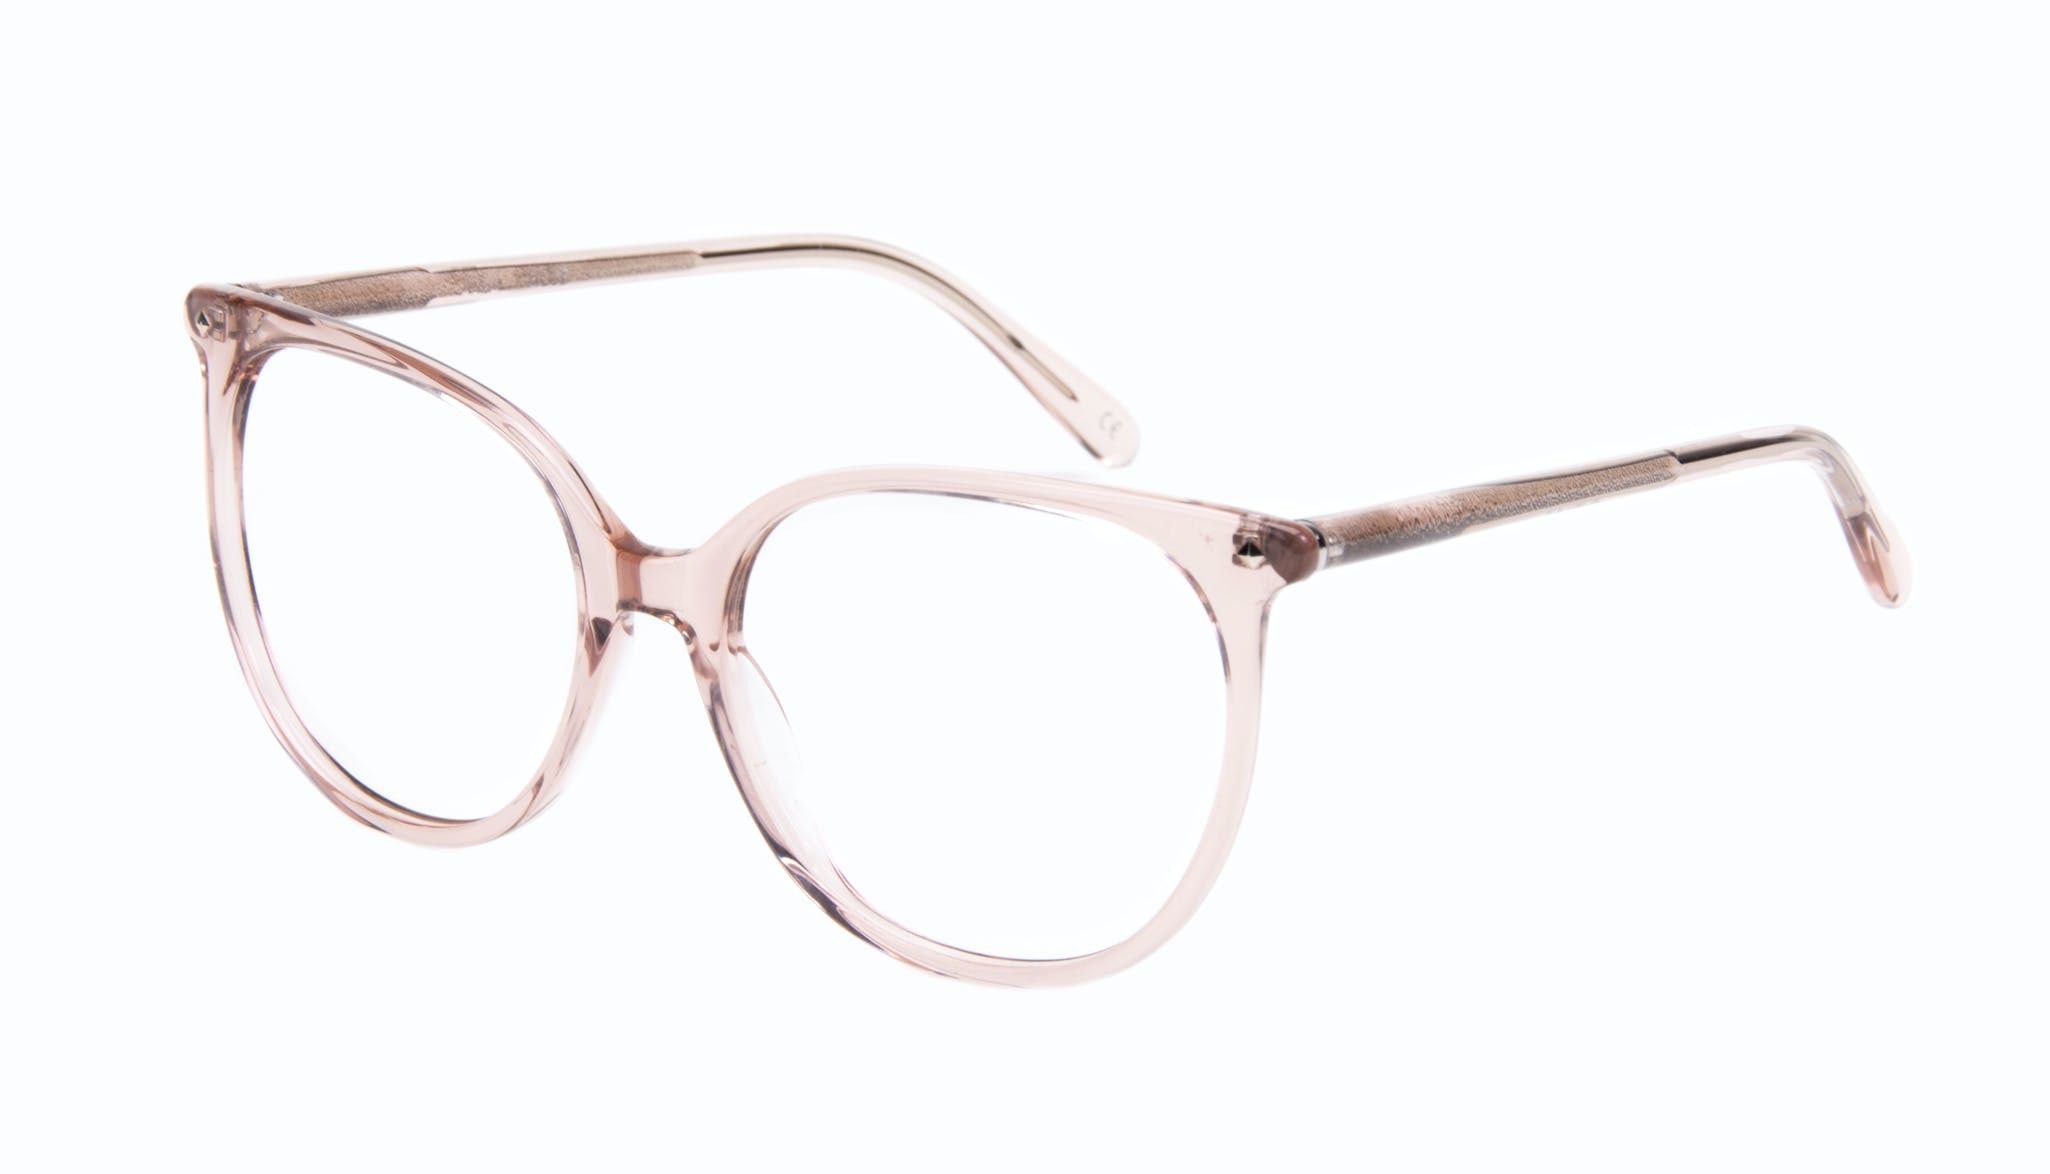 Affordable Fashion Glasses Round Eyeglasses Women Area Rose Tilt